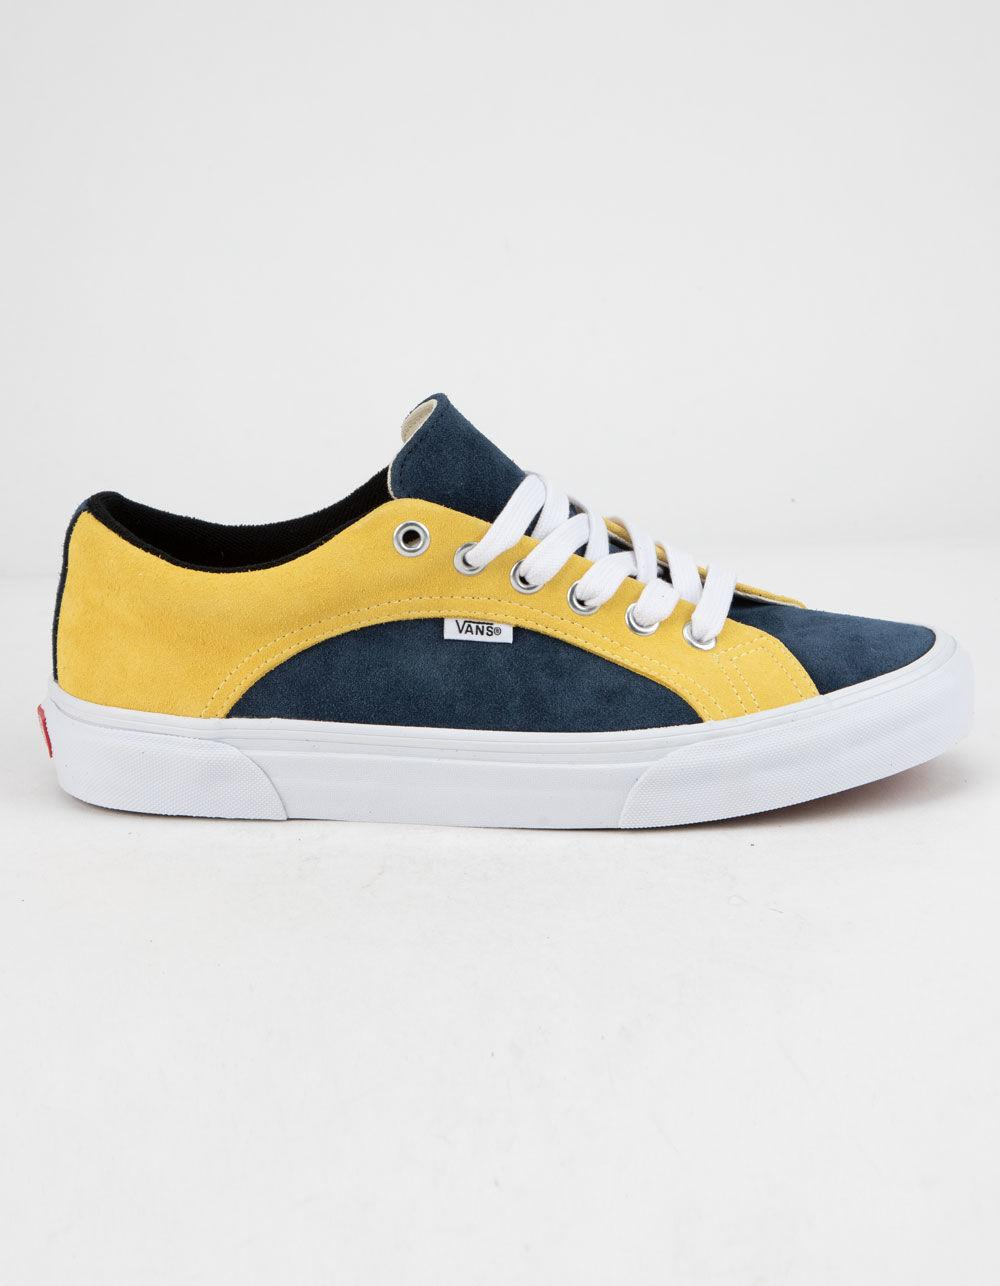 099300767bfd Lyst - Vans Retro Skate Lampin Shoes in Blue for Men - Save 2%